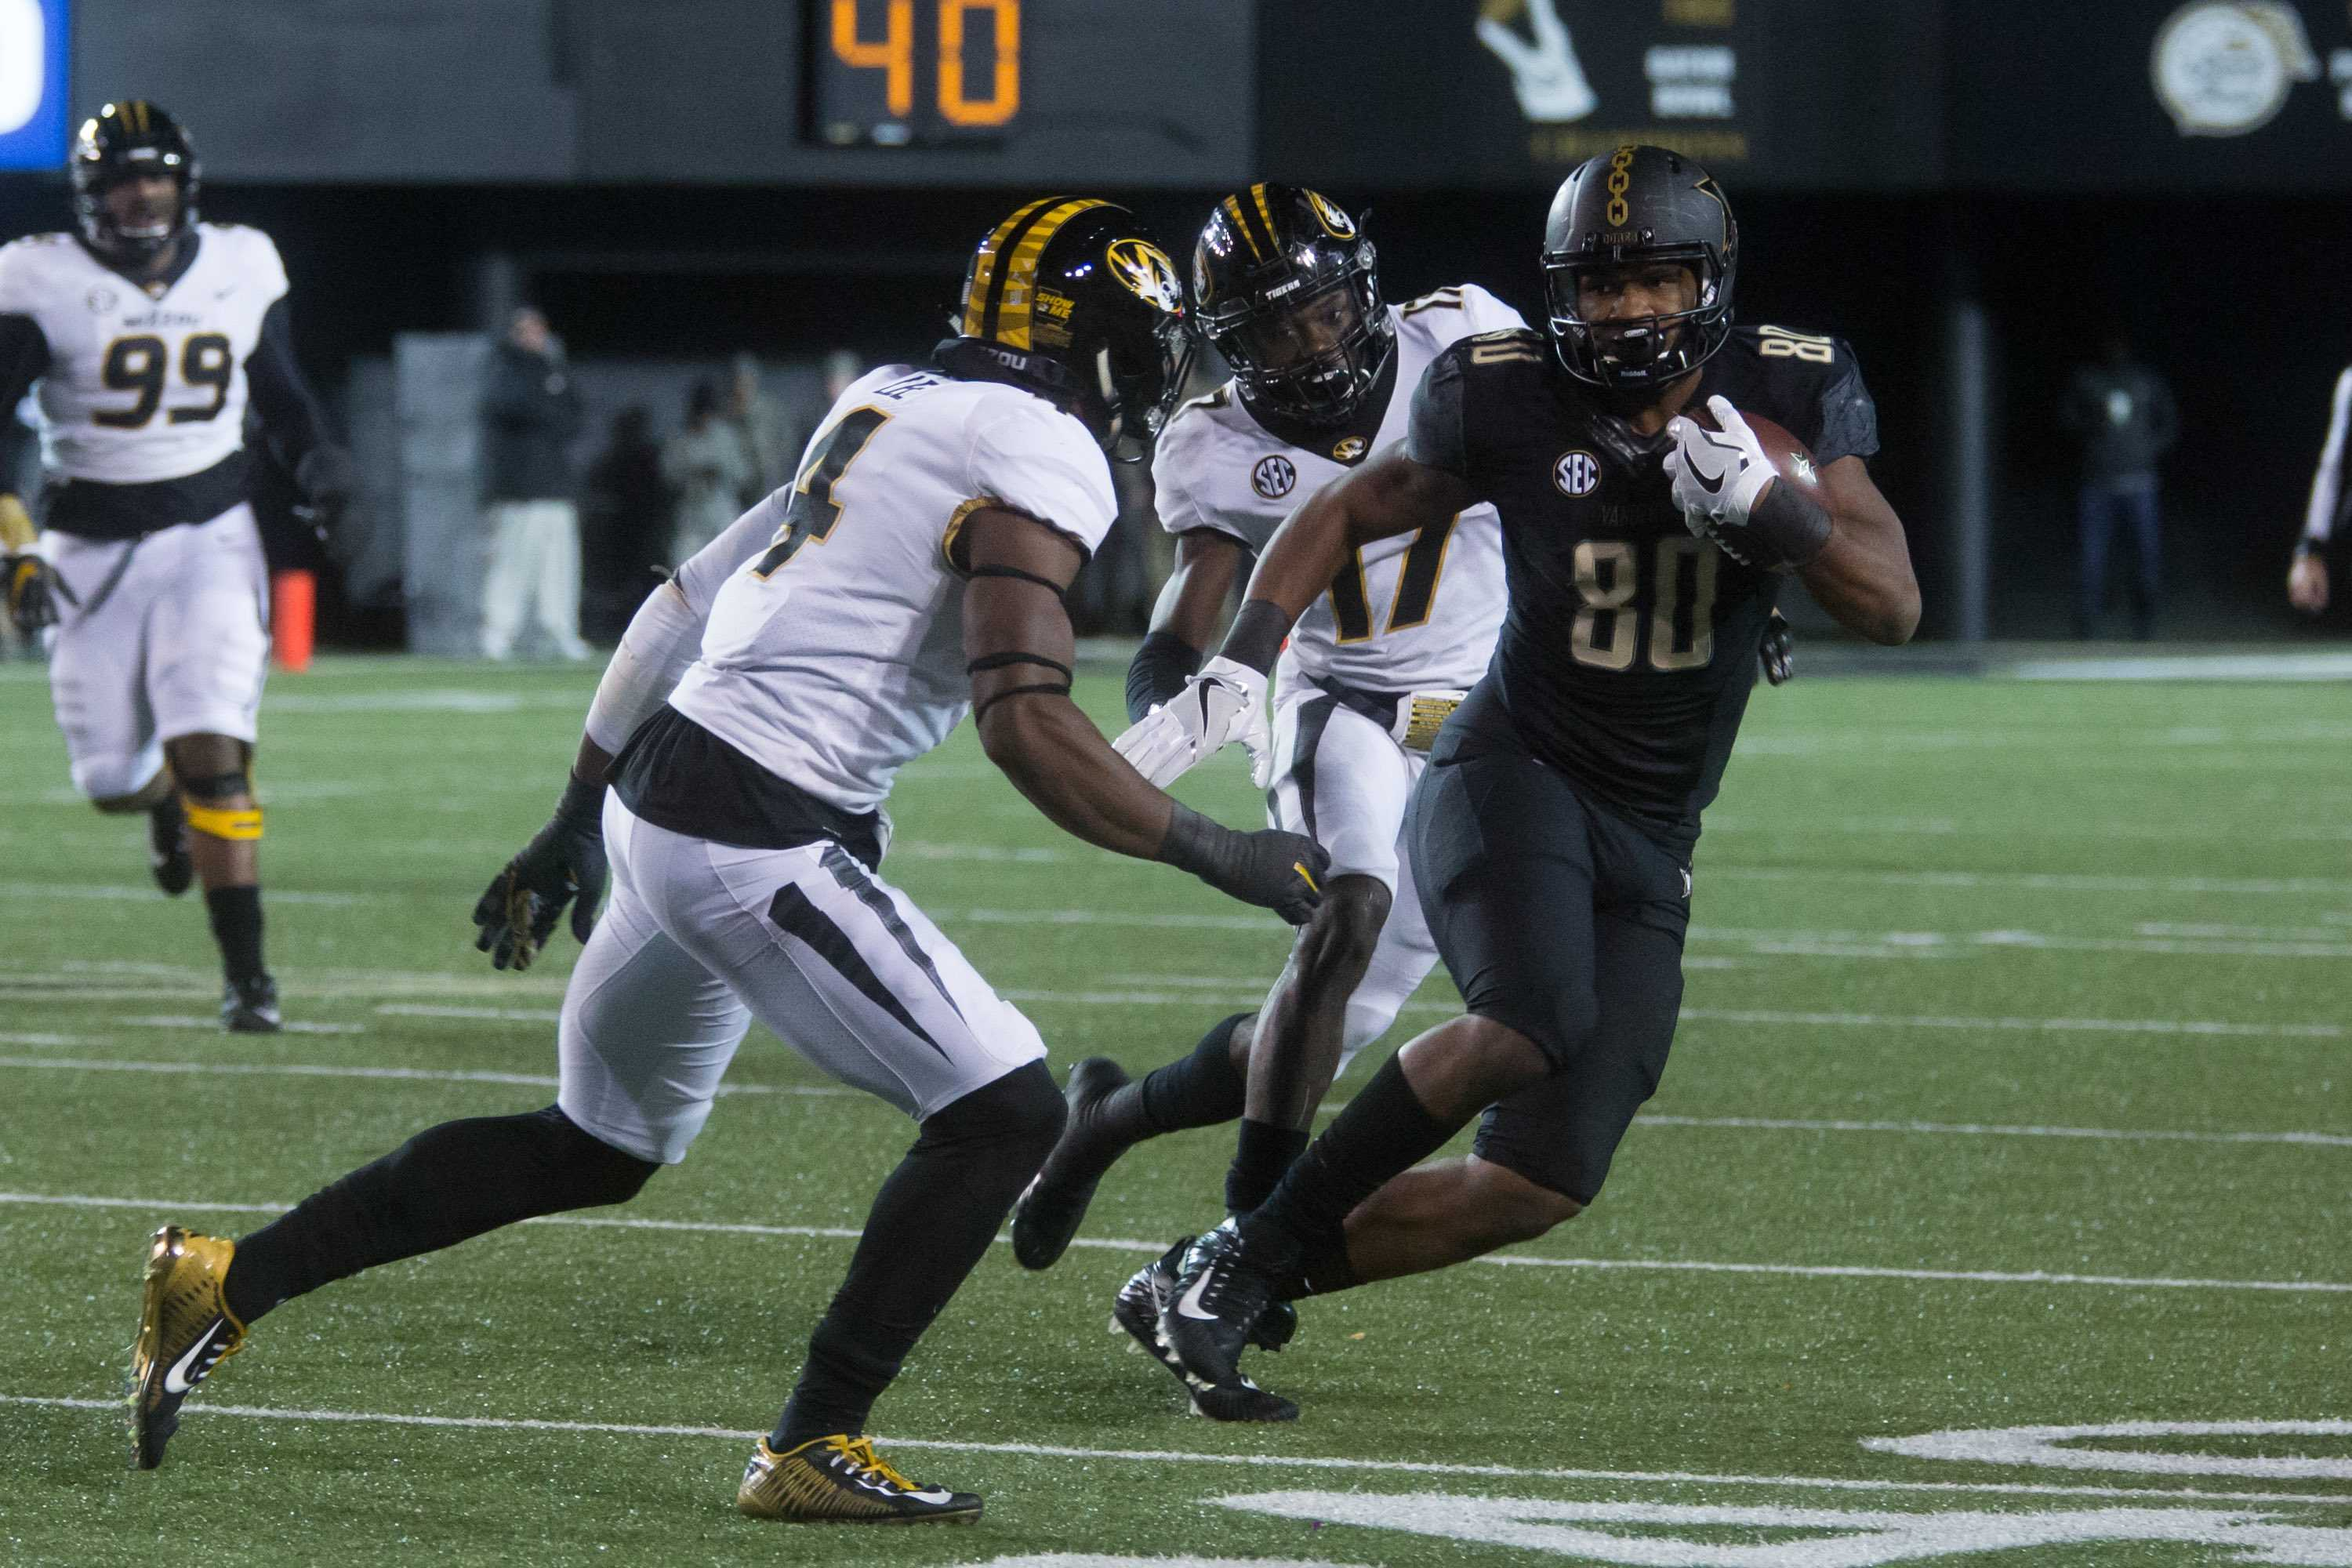 The Commodores fell Missouri 45-17 on Saturday, November 18, 2017. (Photo by Claire Barnett)